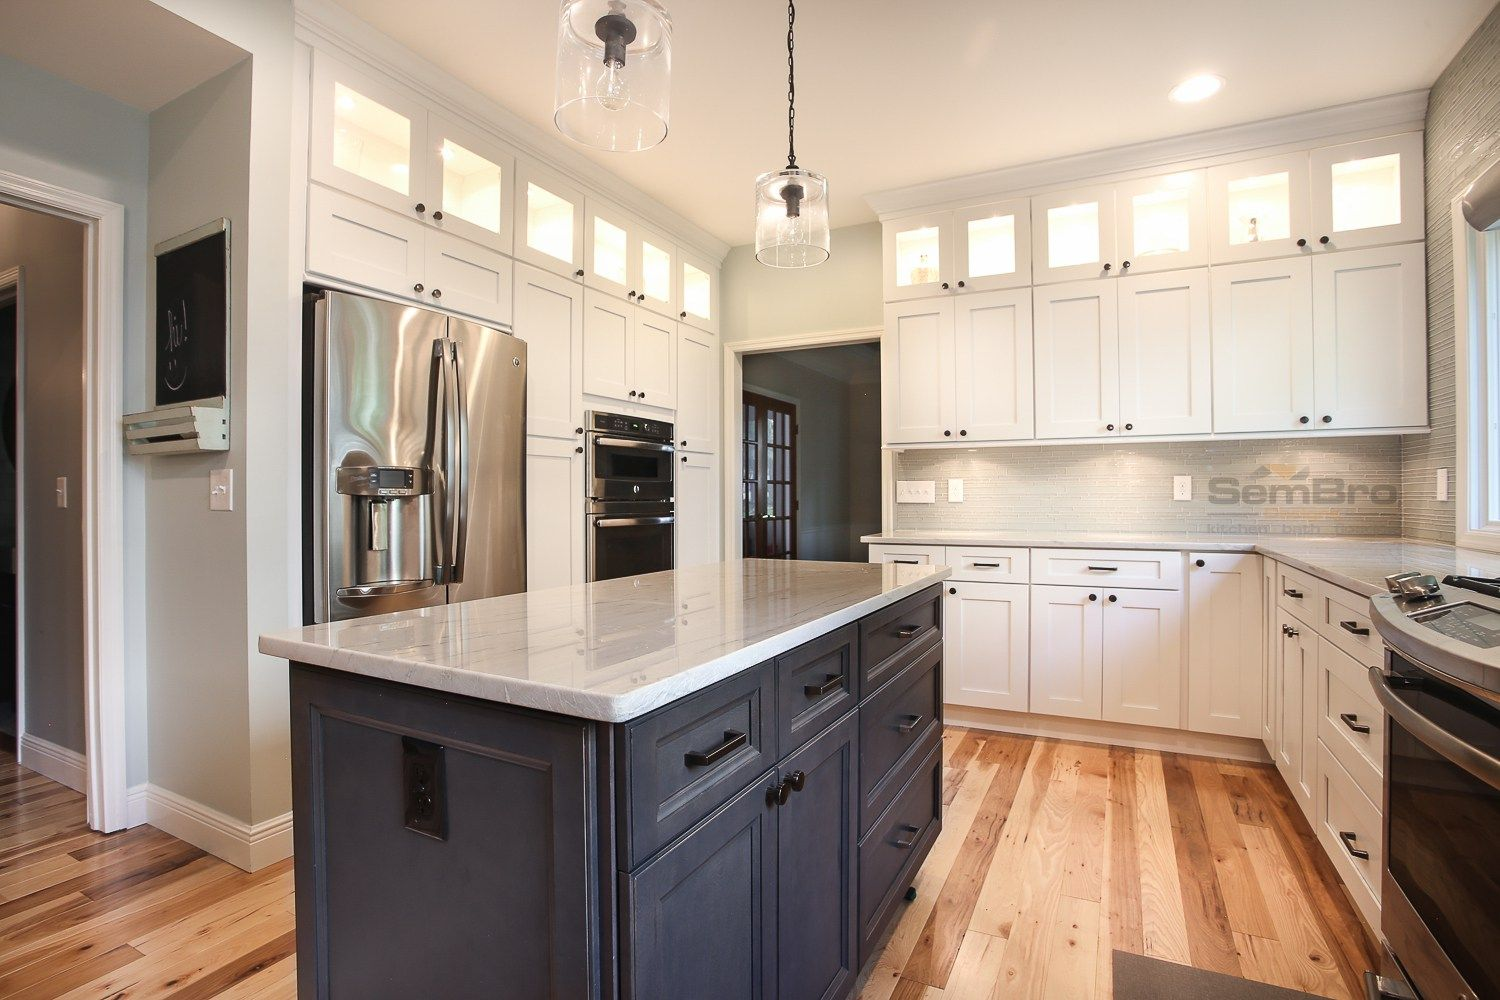 Best Ice White Shaker With Downtown Dark Cabinets In Dublin 400 x 300